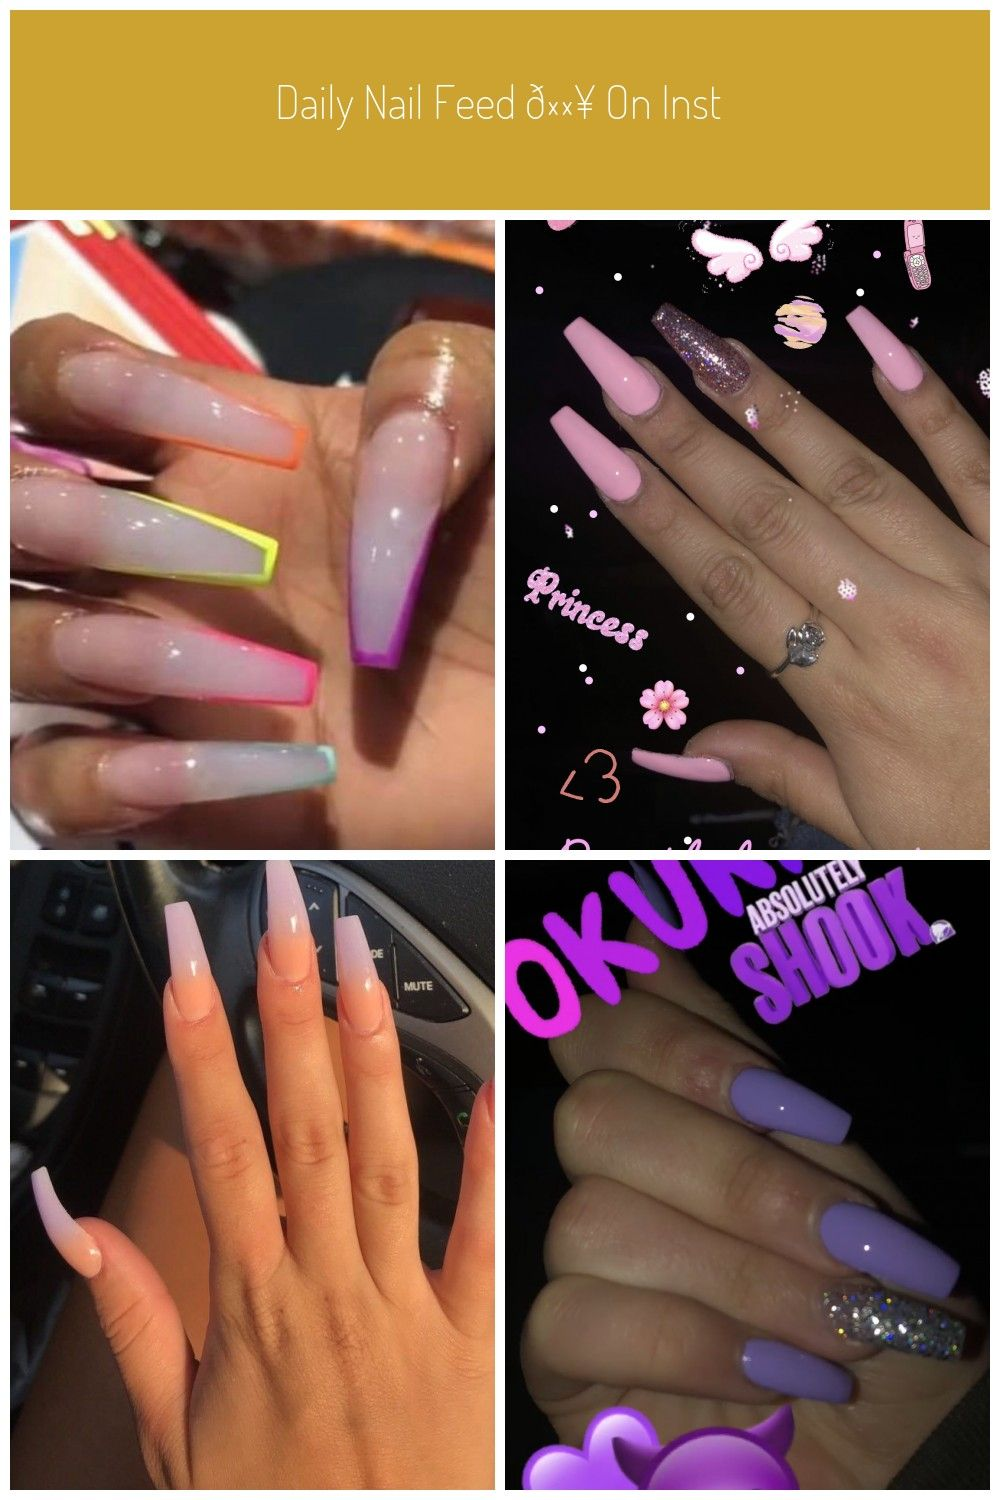 Daily Nail Feed On Instagram Baddie Nails Baddie Nails Pink Acrylic Nails Nails Best Acrylic Nails